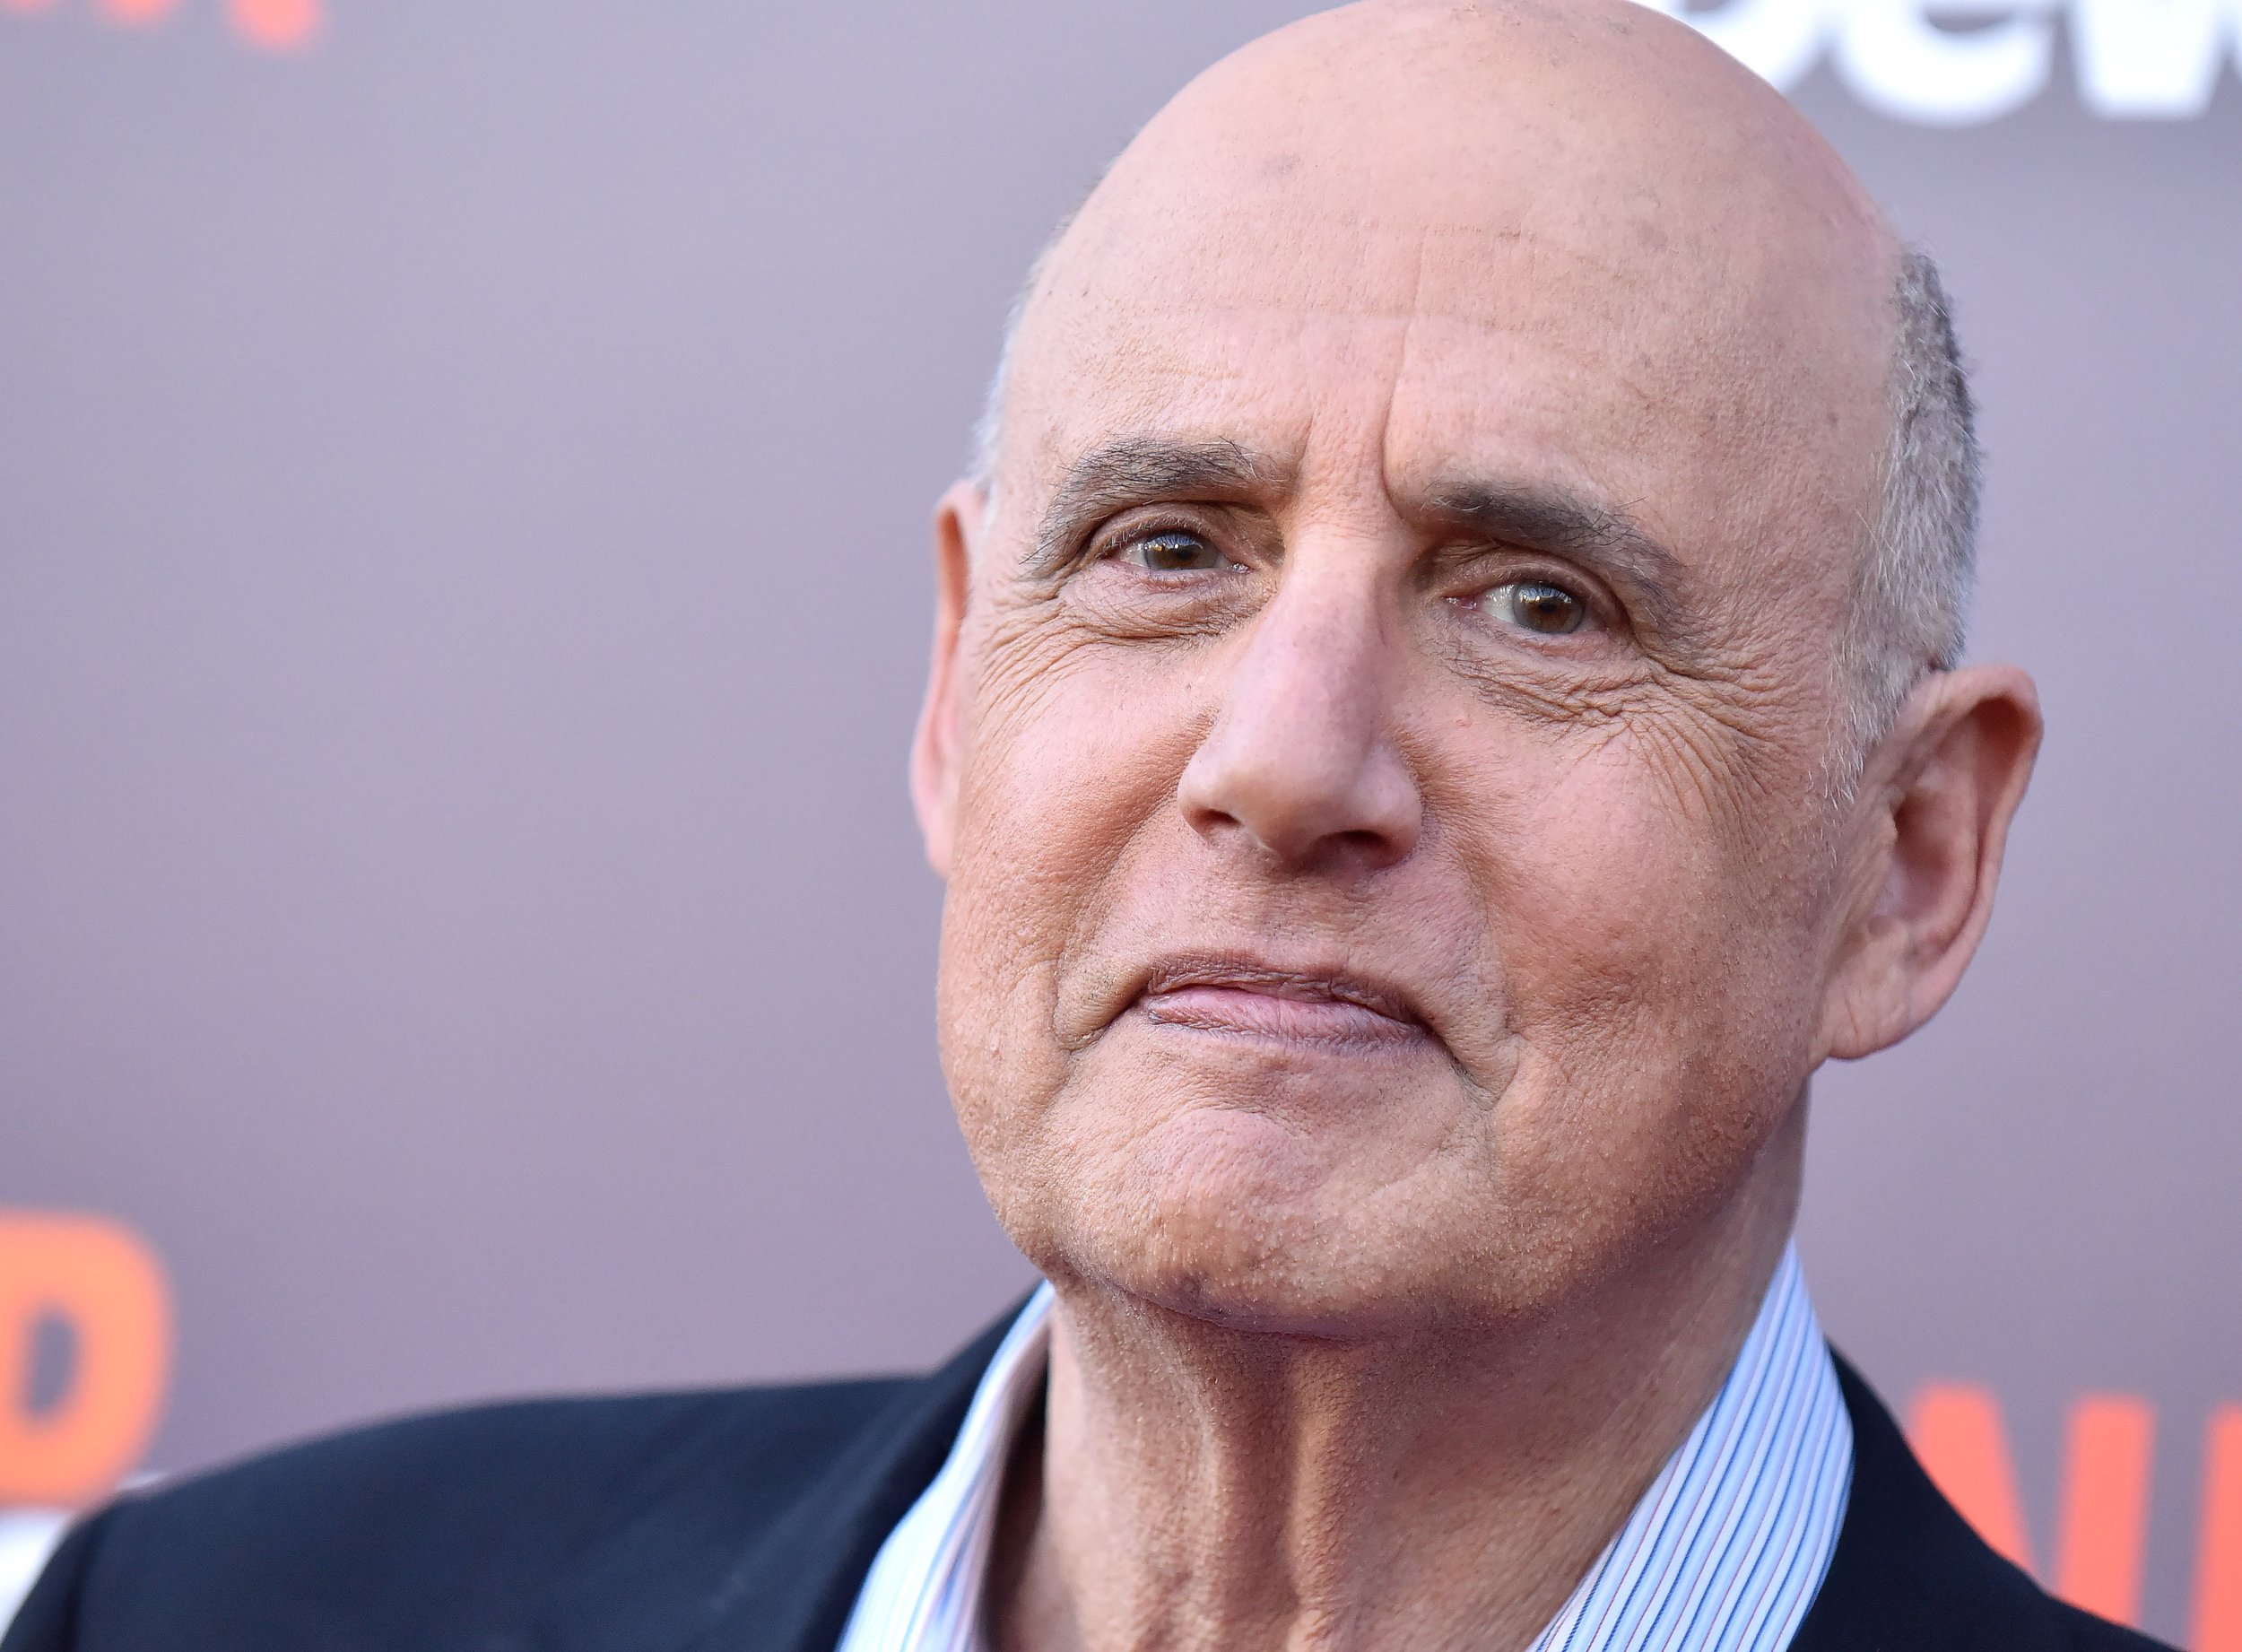 Jeffrey Tambor apologised to Arrested Development co-stars over sexual misconduct claims